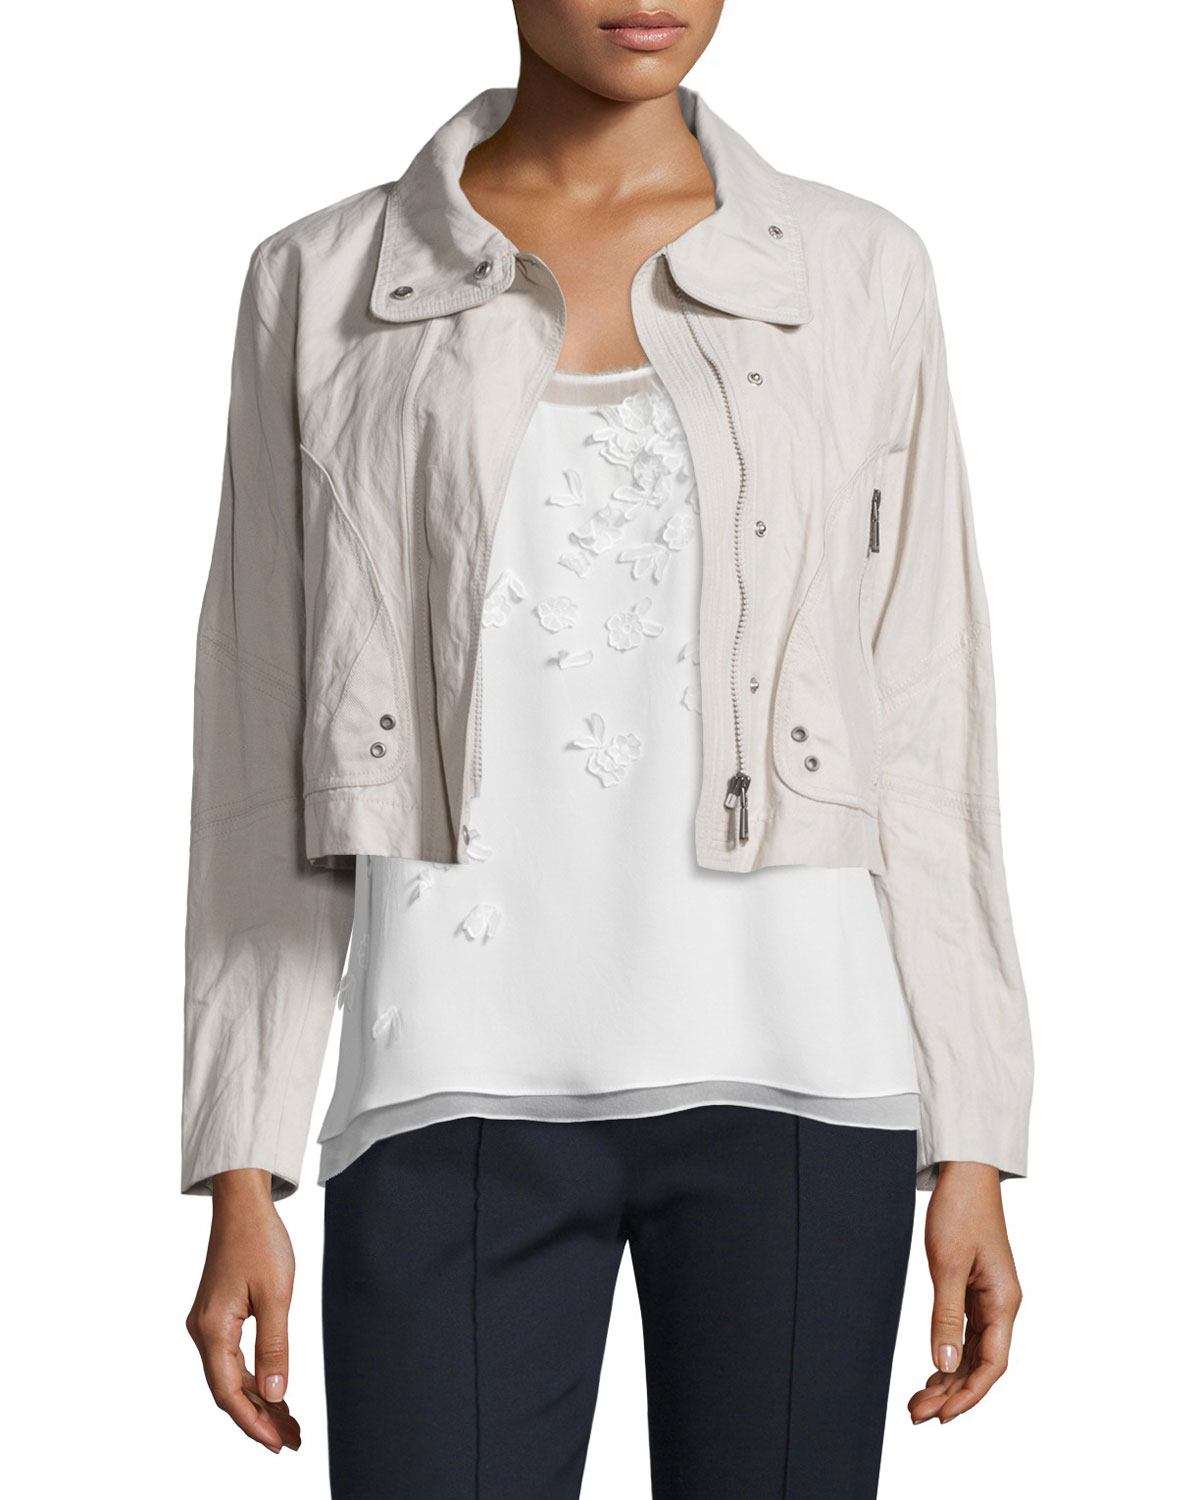 Ripley Zip-Front Cropped Jacket, Macrame